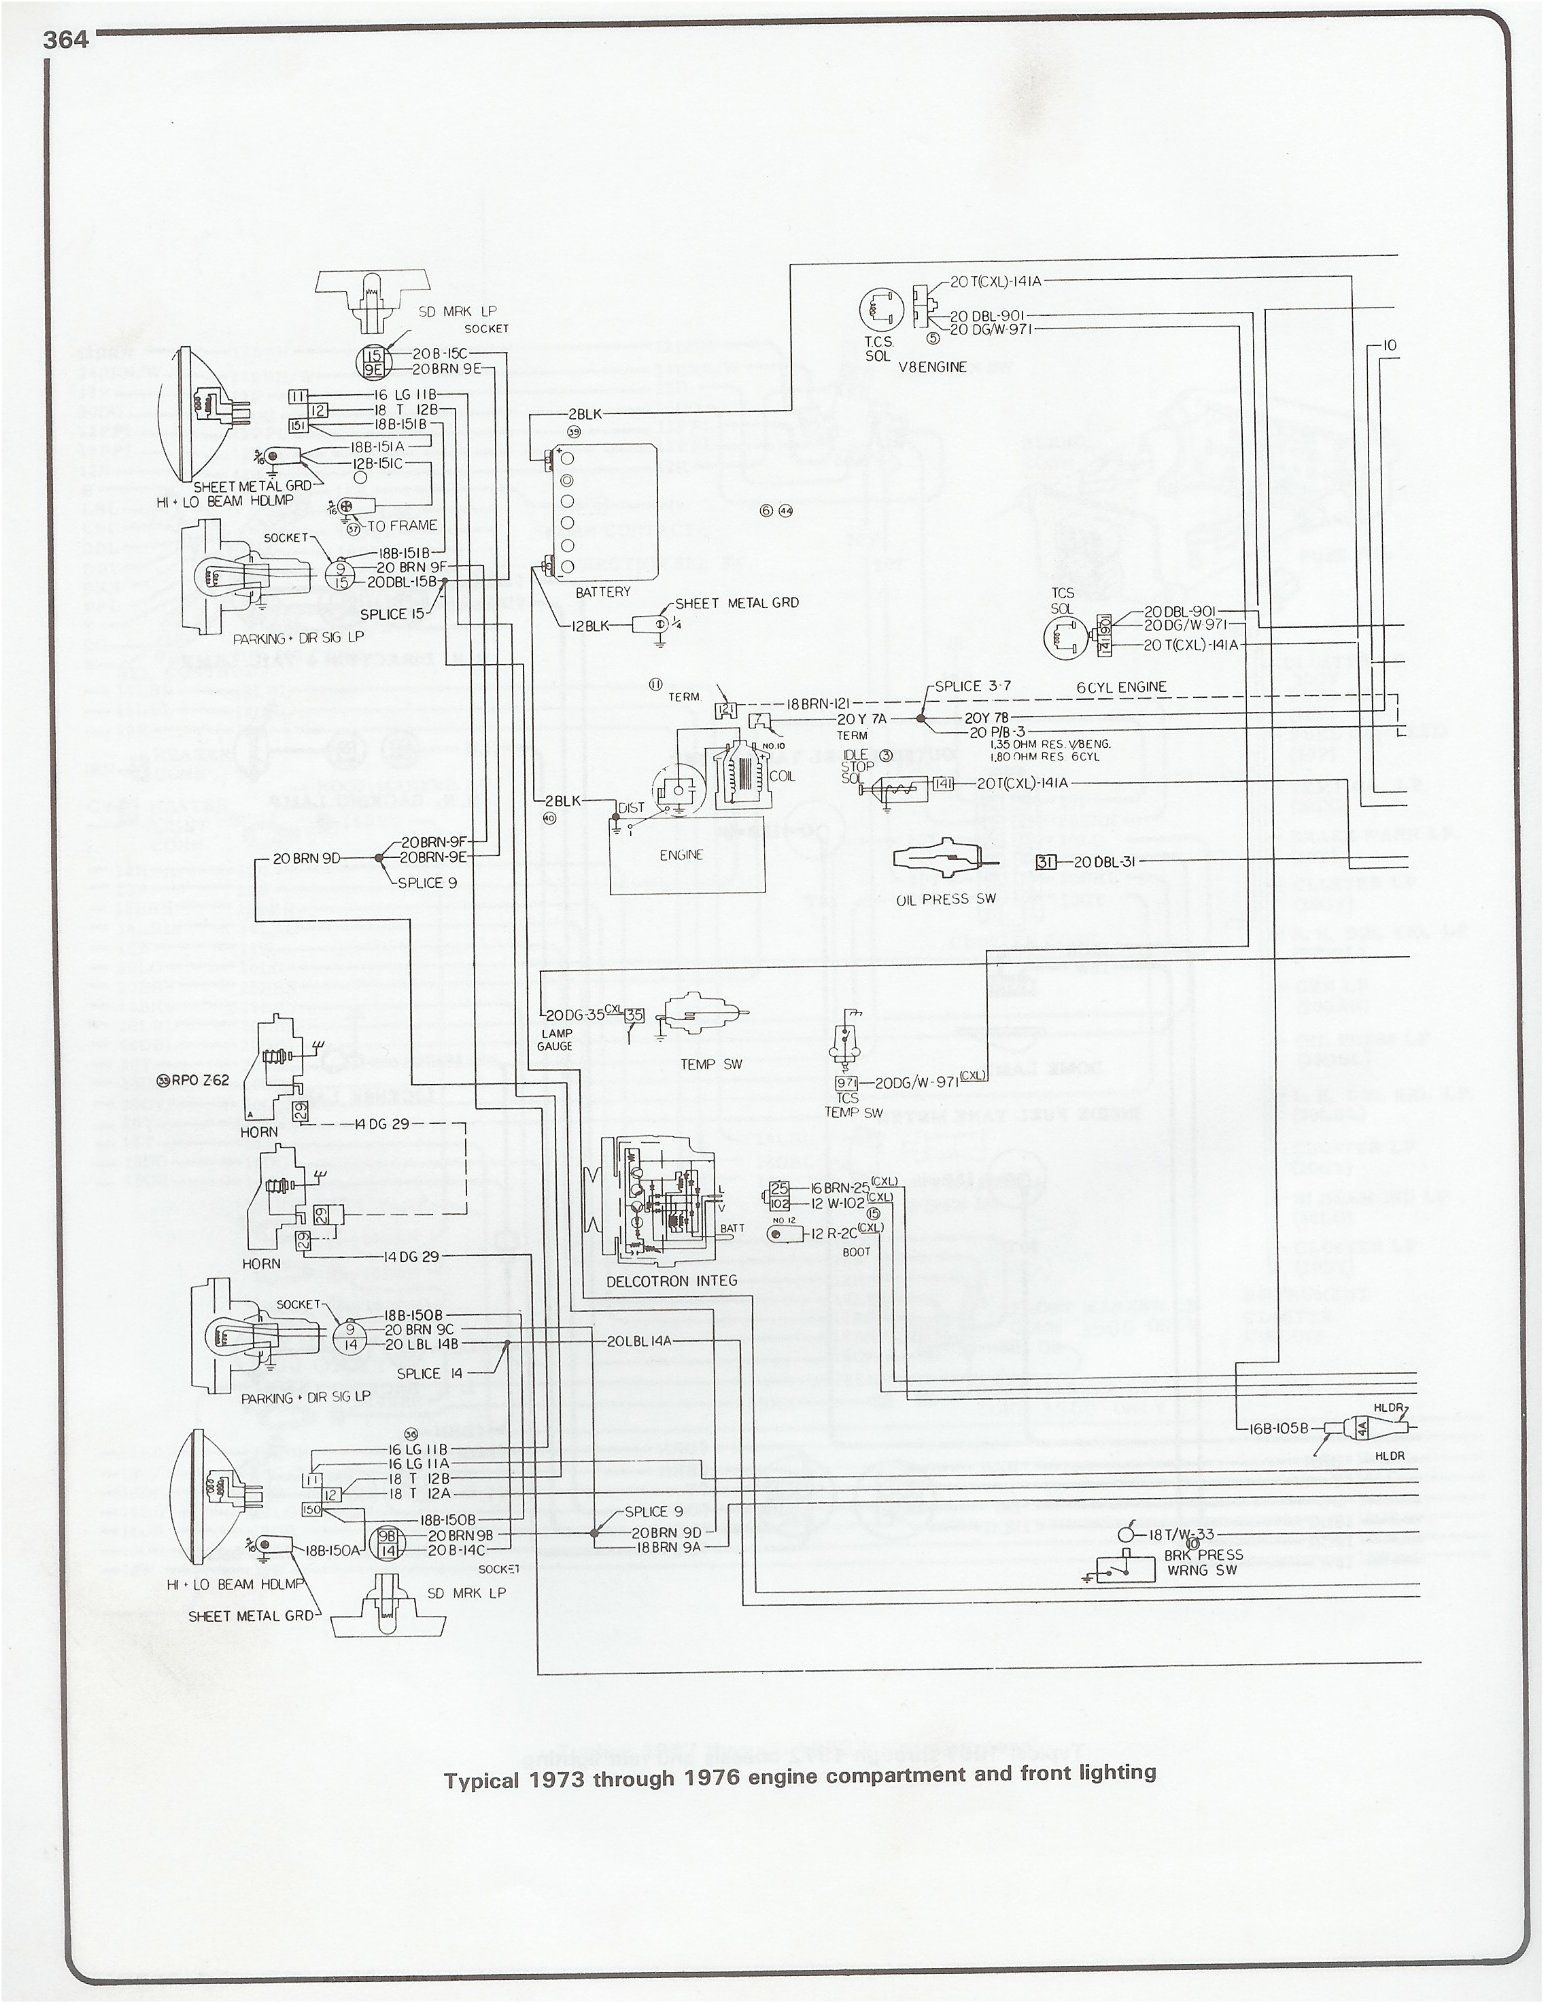 wiring diagram 1973 - 1976 chevy pickup #chevy #wiring # ... 1976 chevy truck wiper motor wiring diagram